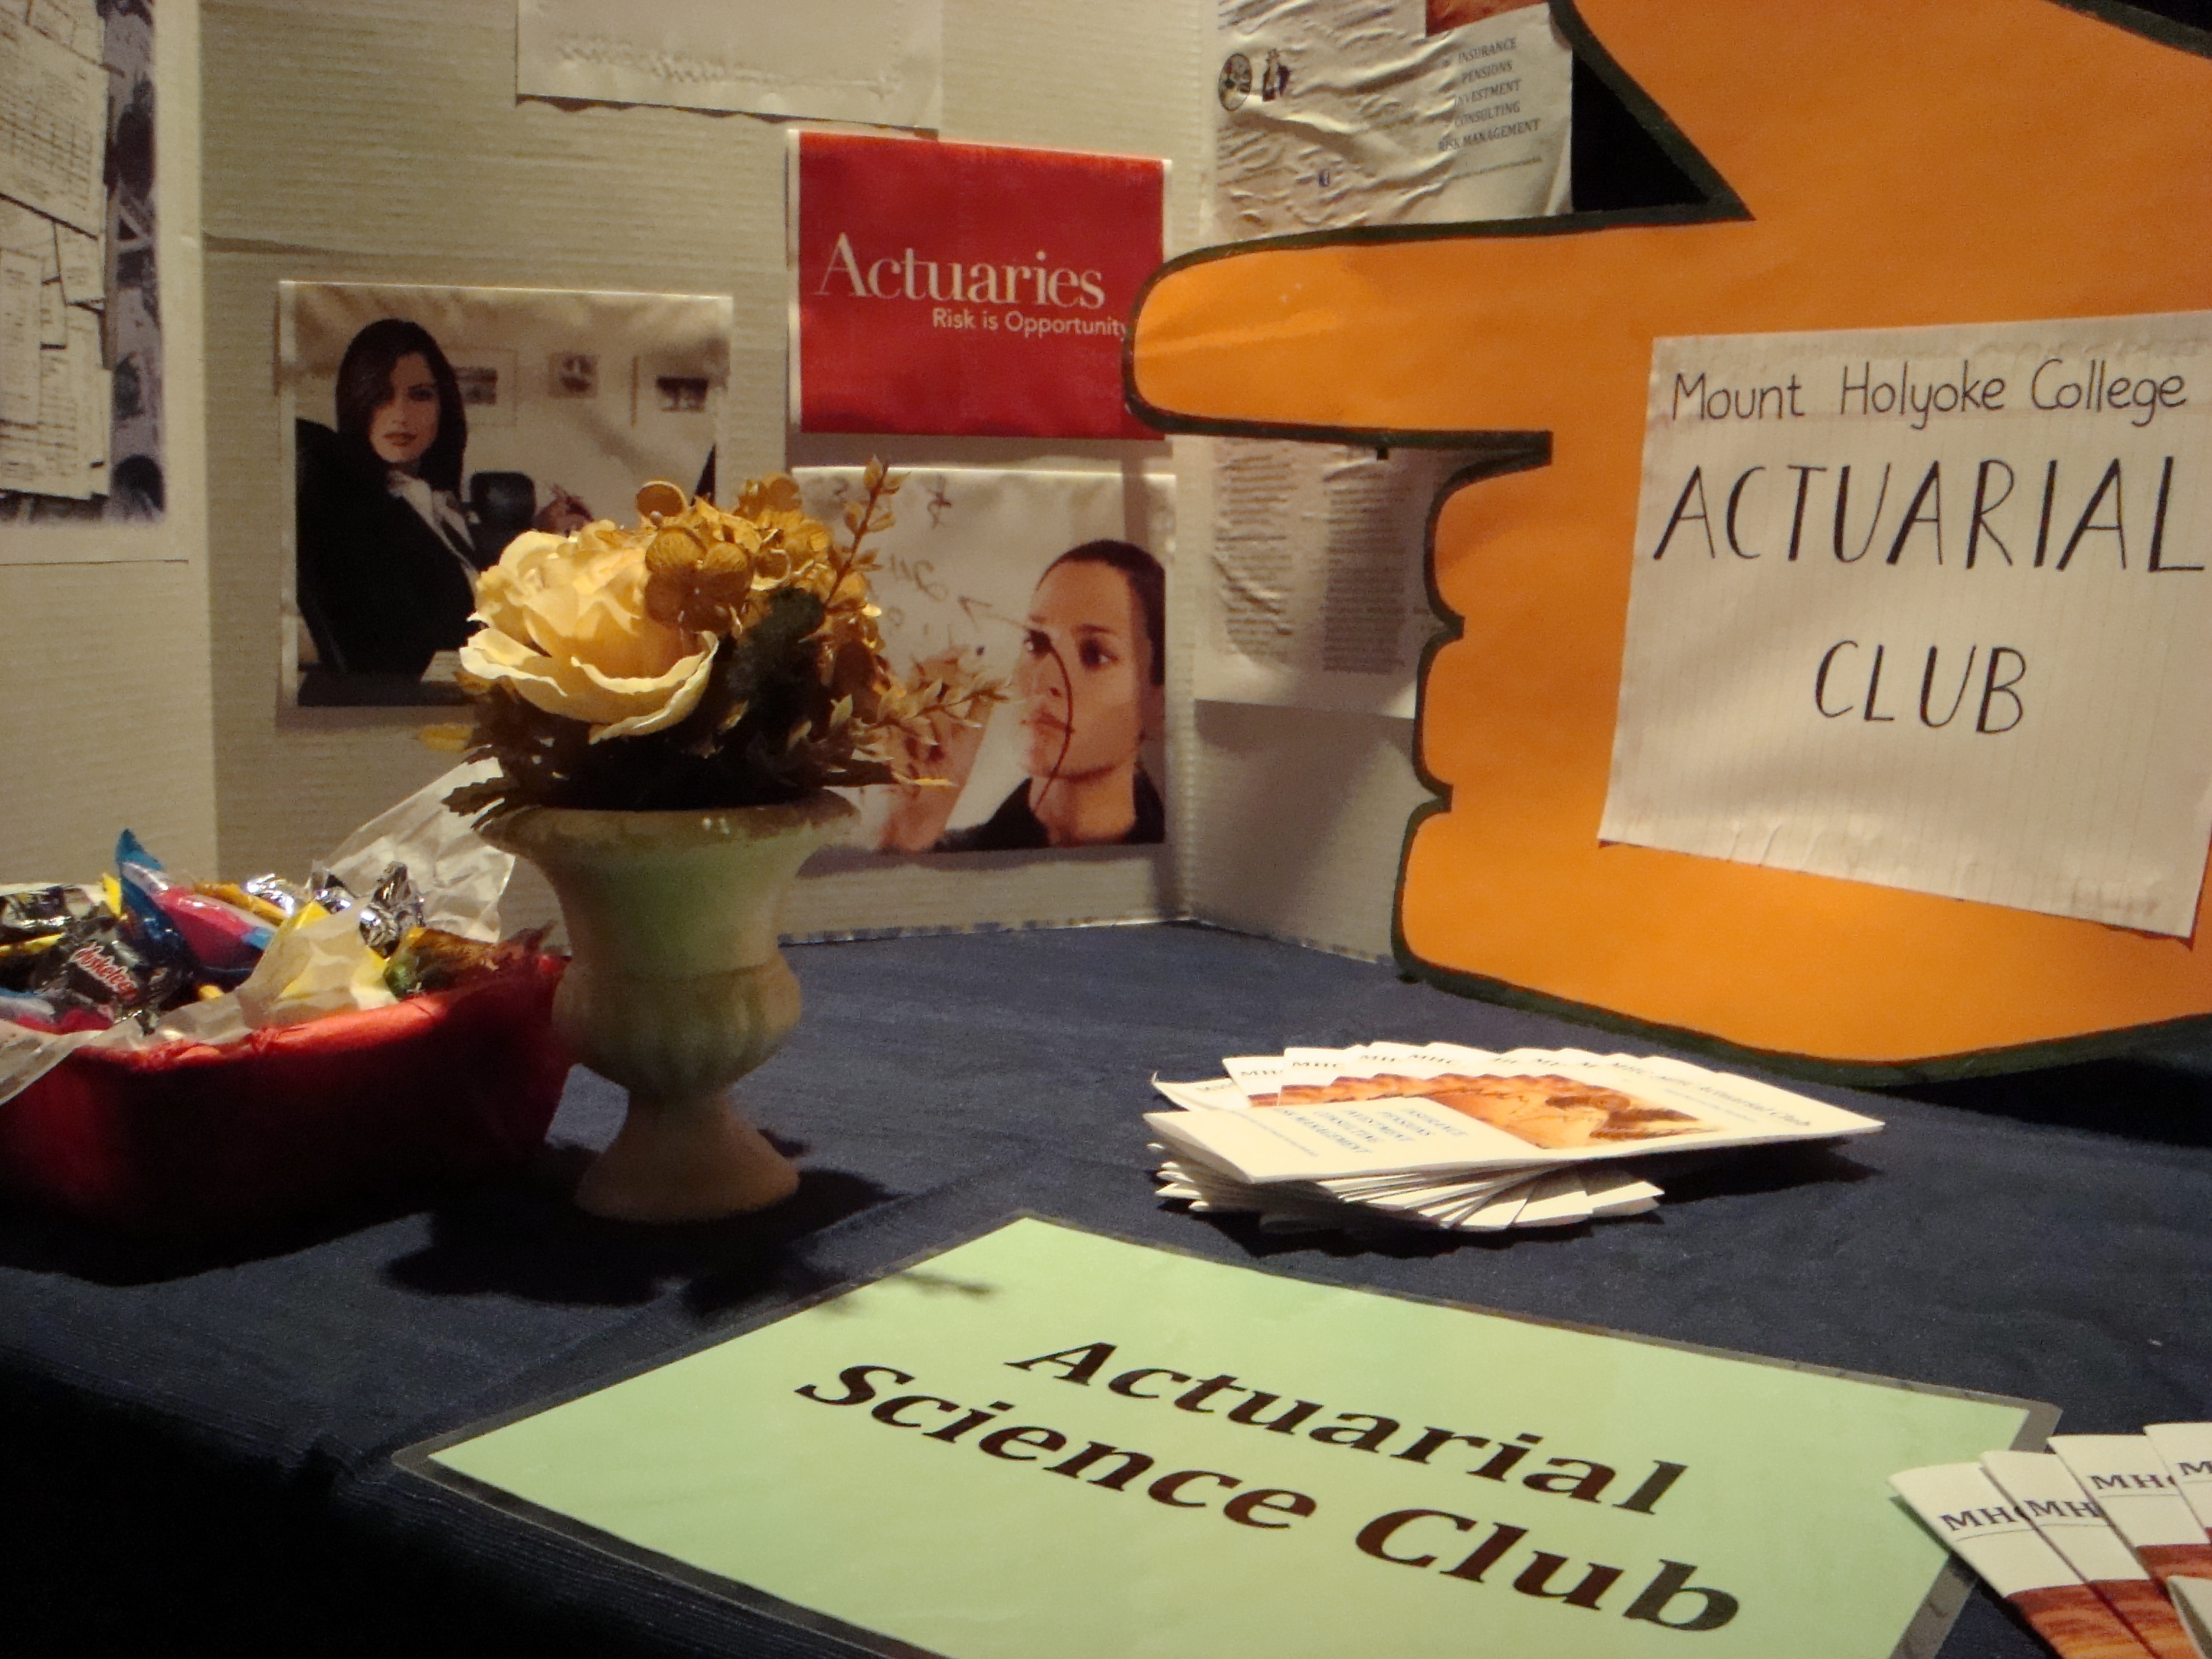 The Actuarial Club is not currently active, but if you're interested in an actuarial career or in getting together with other students to activate the club, please contact any Statistics faculty member.